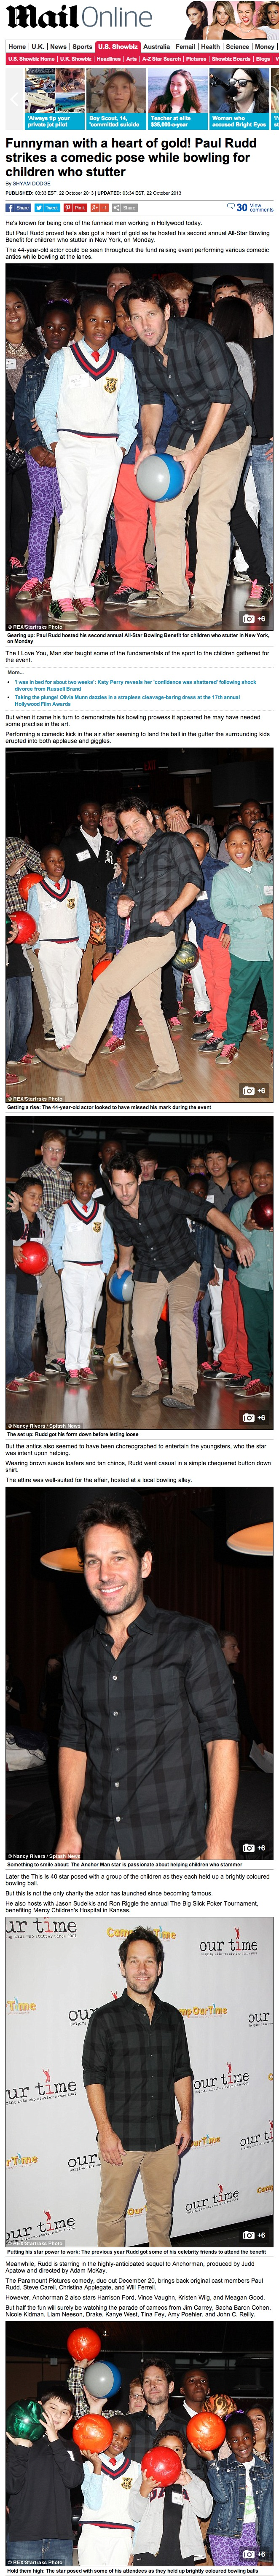 Funnyman with a Heart of Gold! Paul Rudd Strikes a Comedic Pose While Bowling for Children Who Stutter